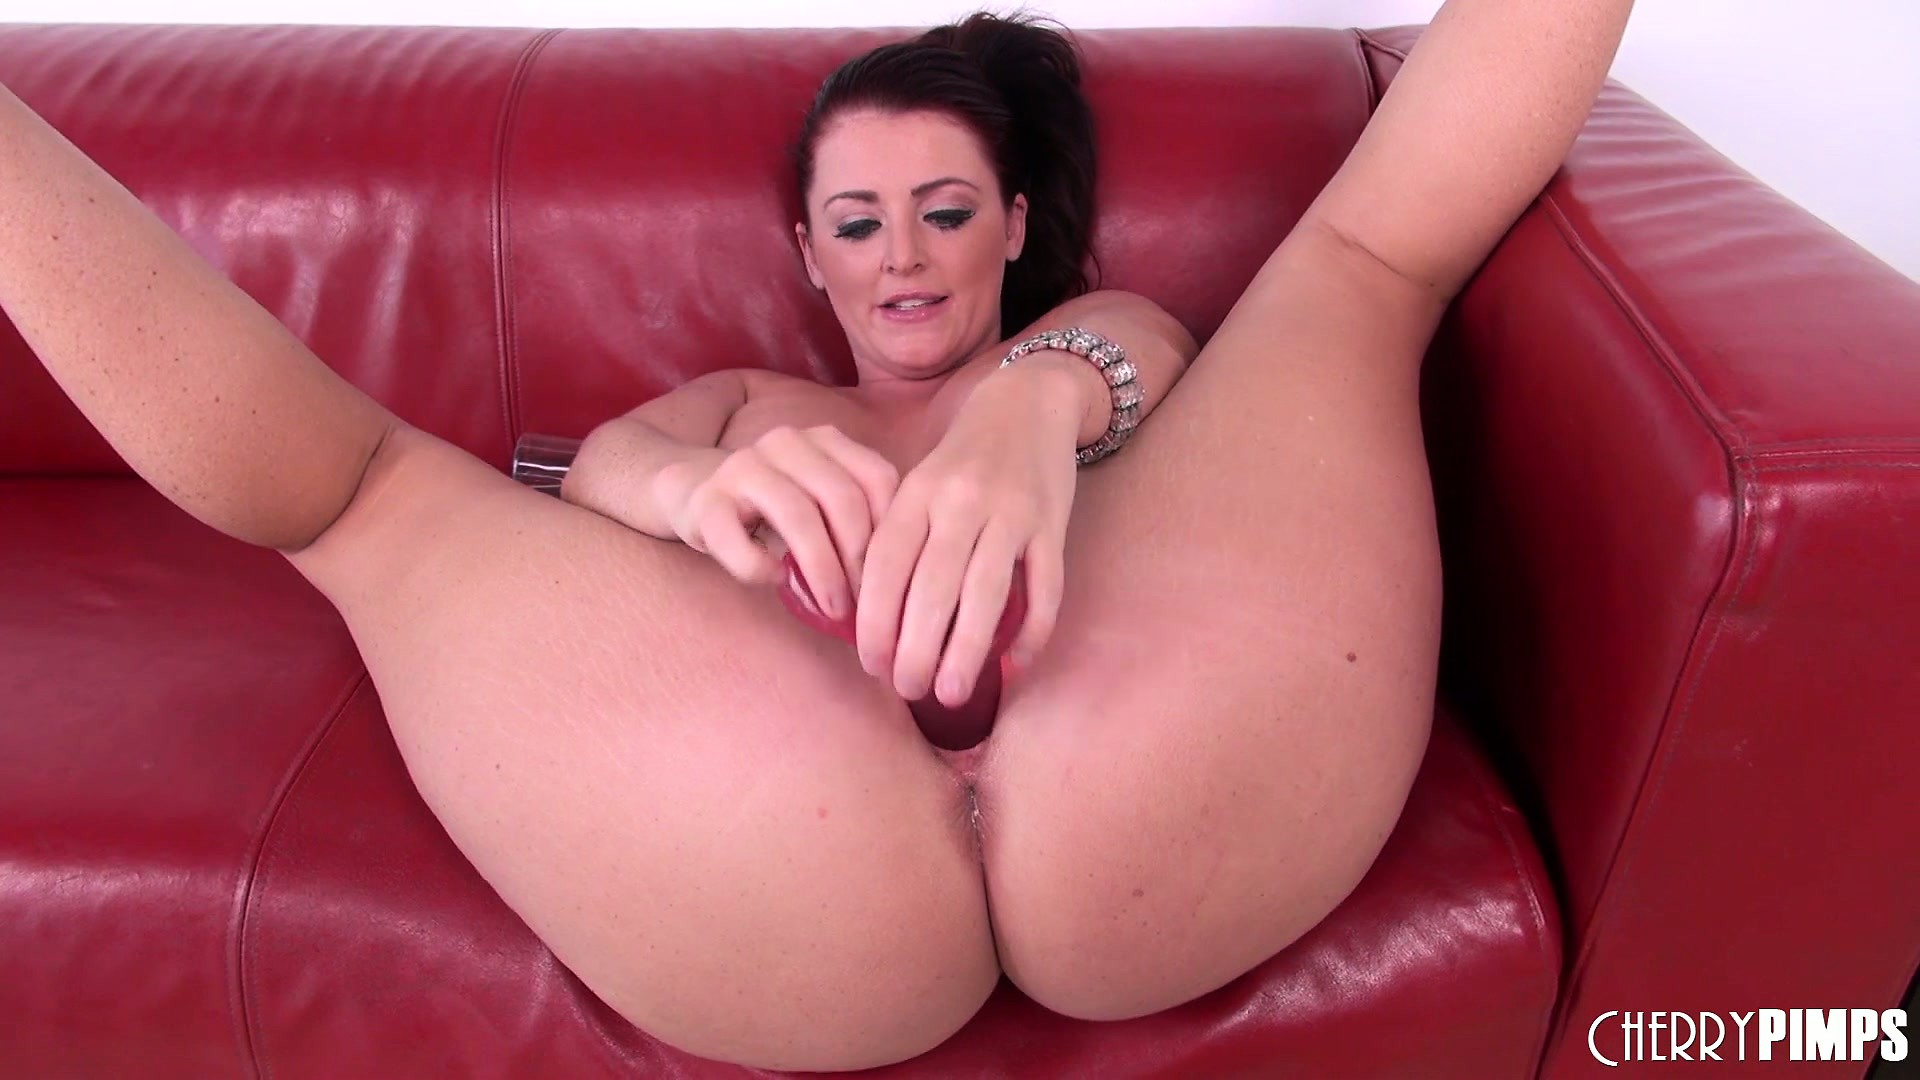 Porno Video of Sophie Dee Having A Good Time With Her Toys And Showing Off Her Ass